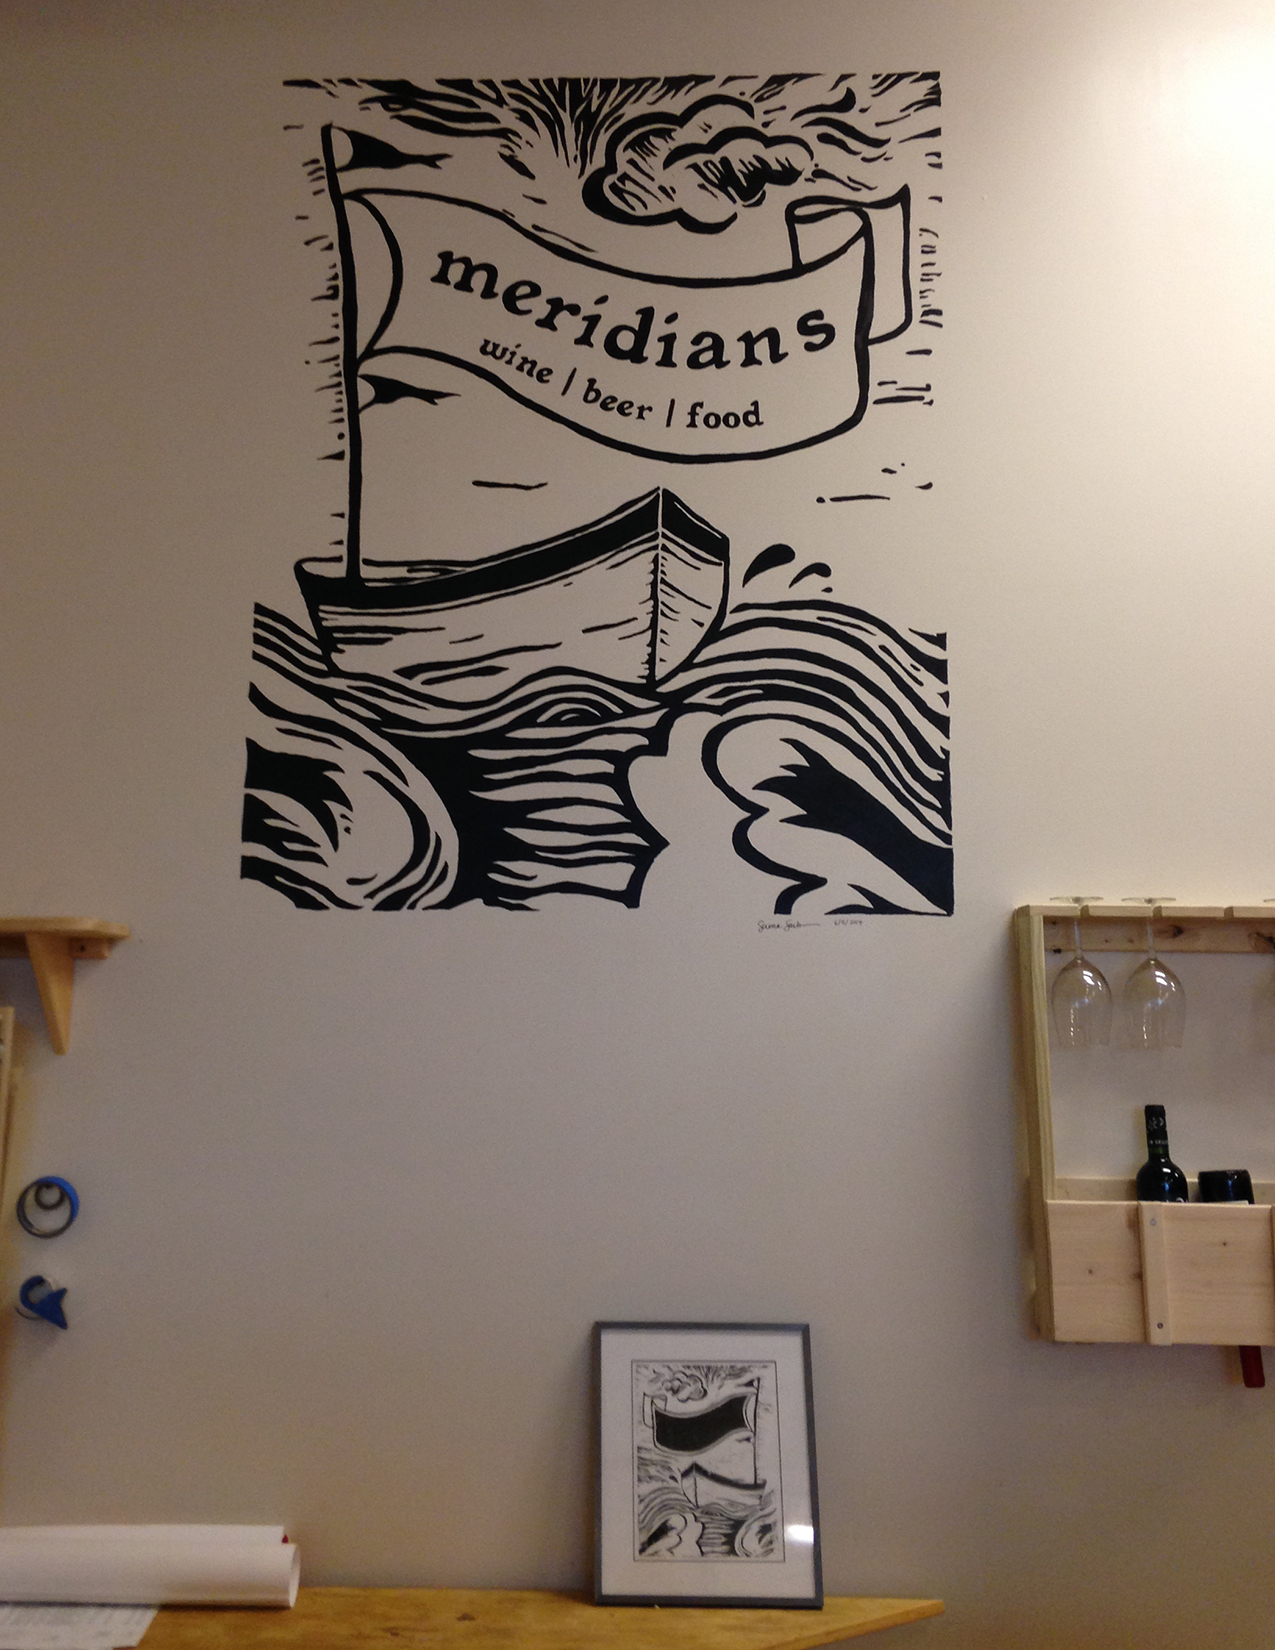 Meridians Signage in Store